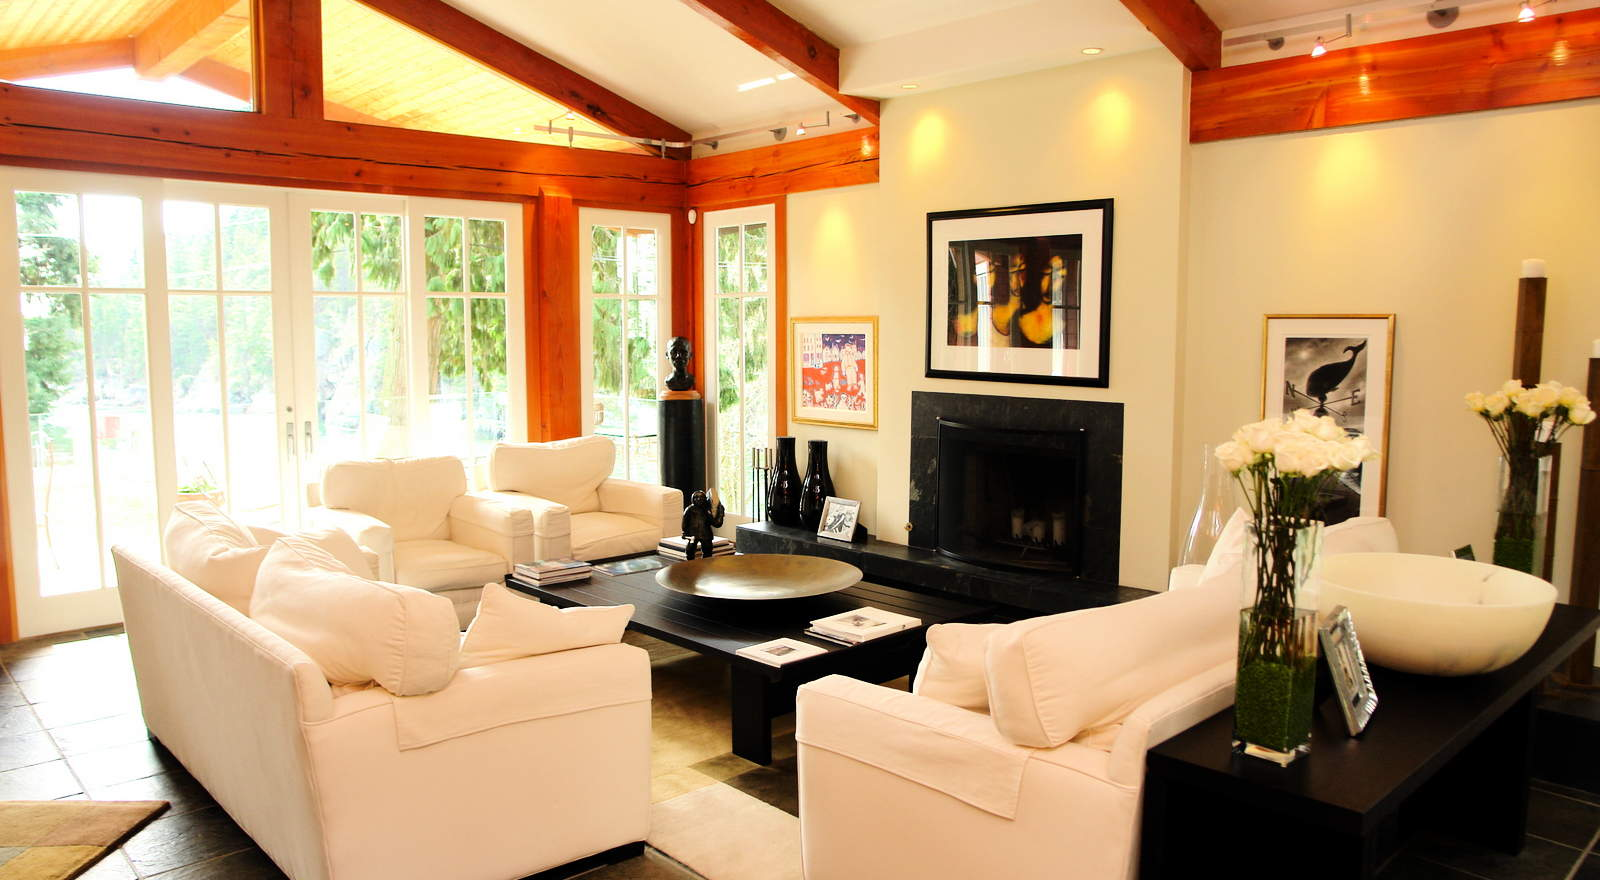 design ideas living rooms with vaulted ceilings